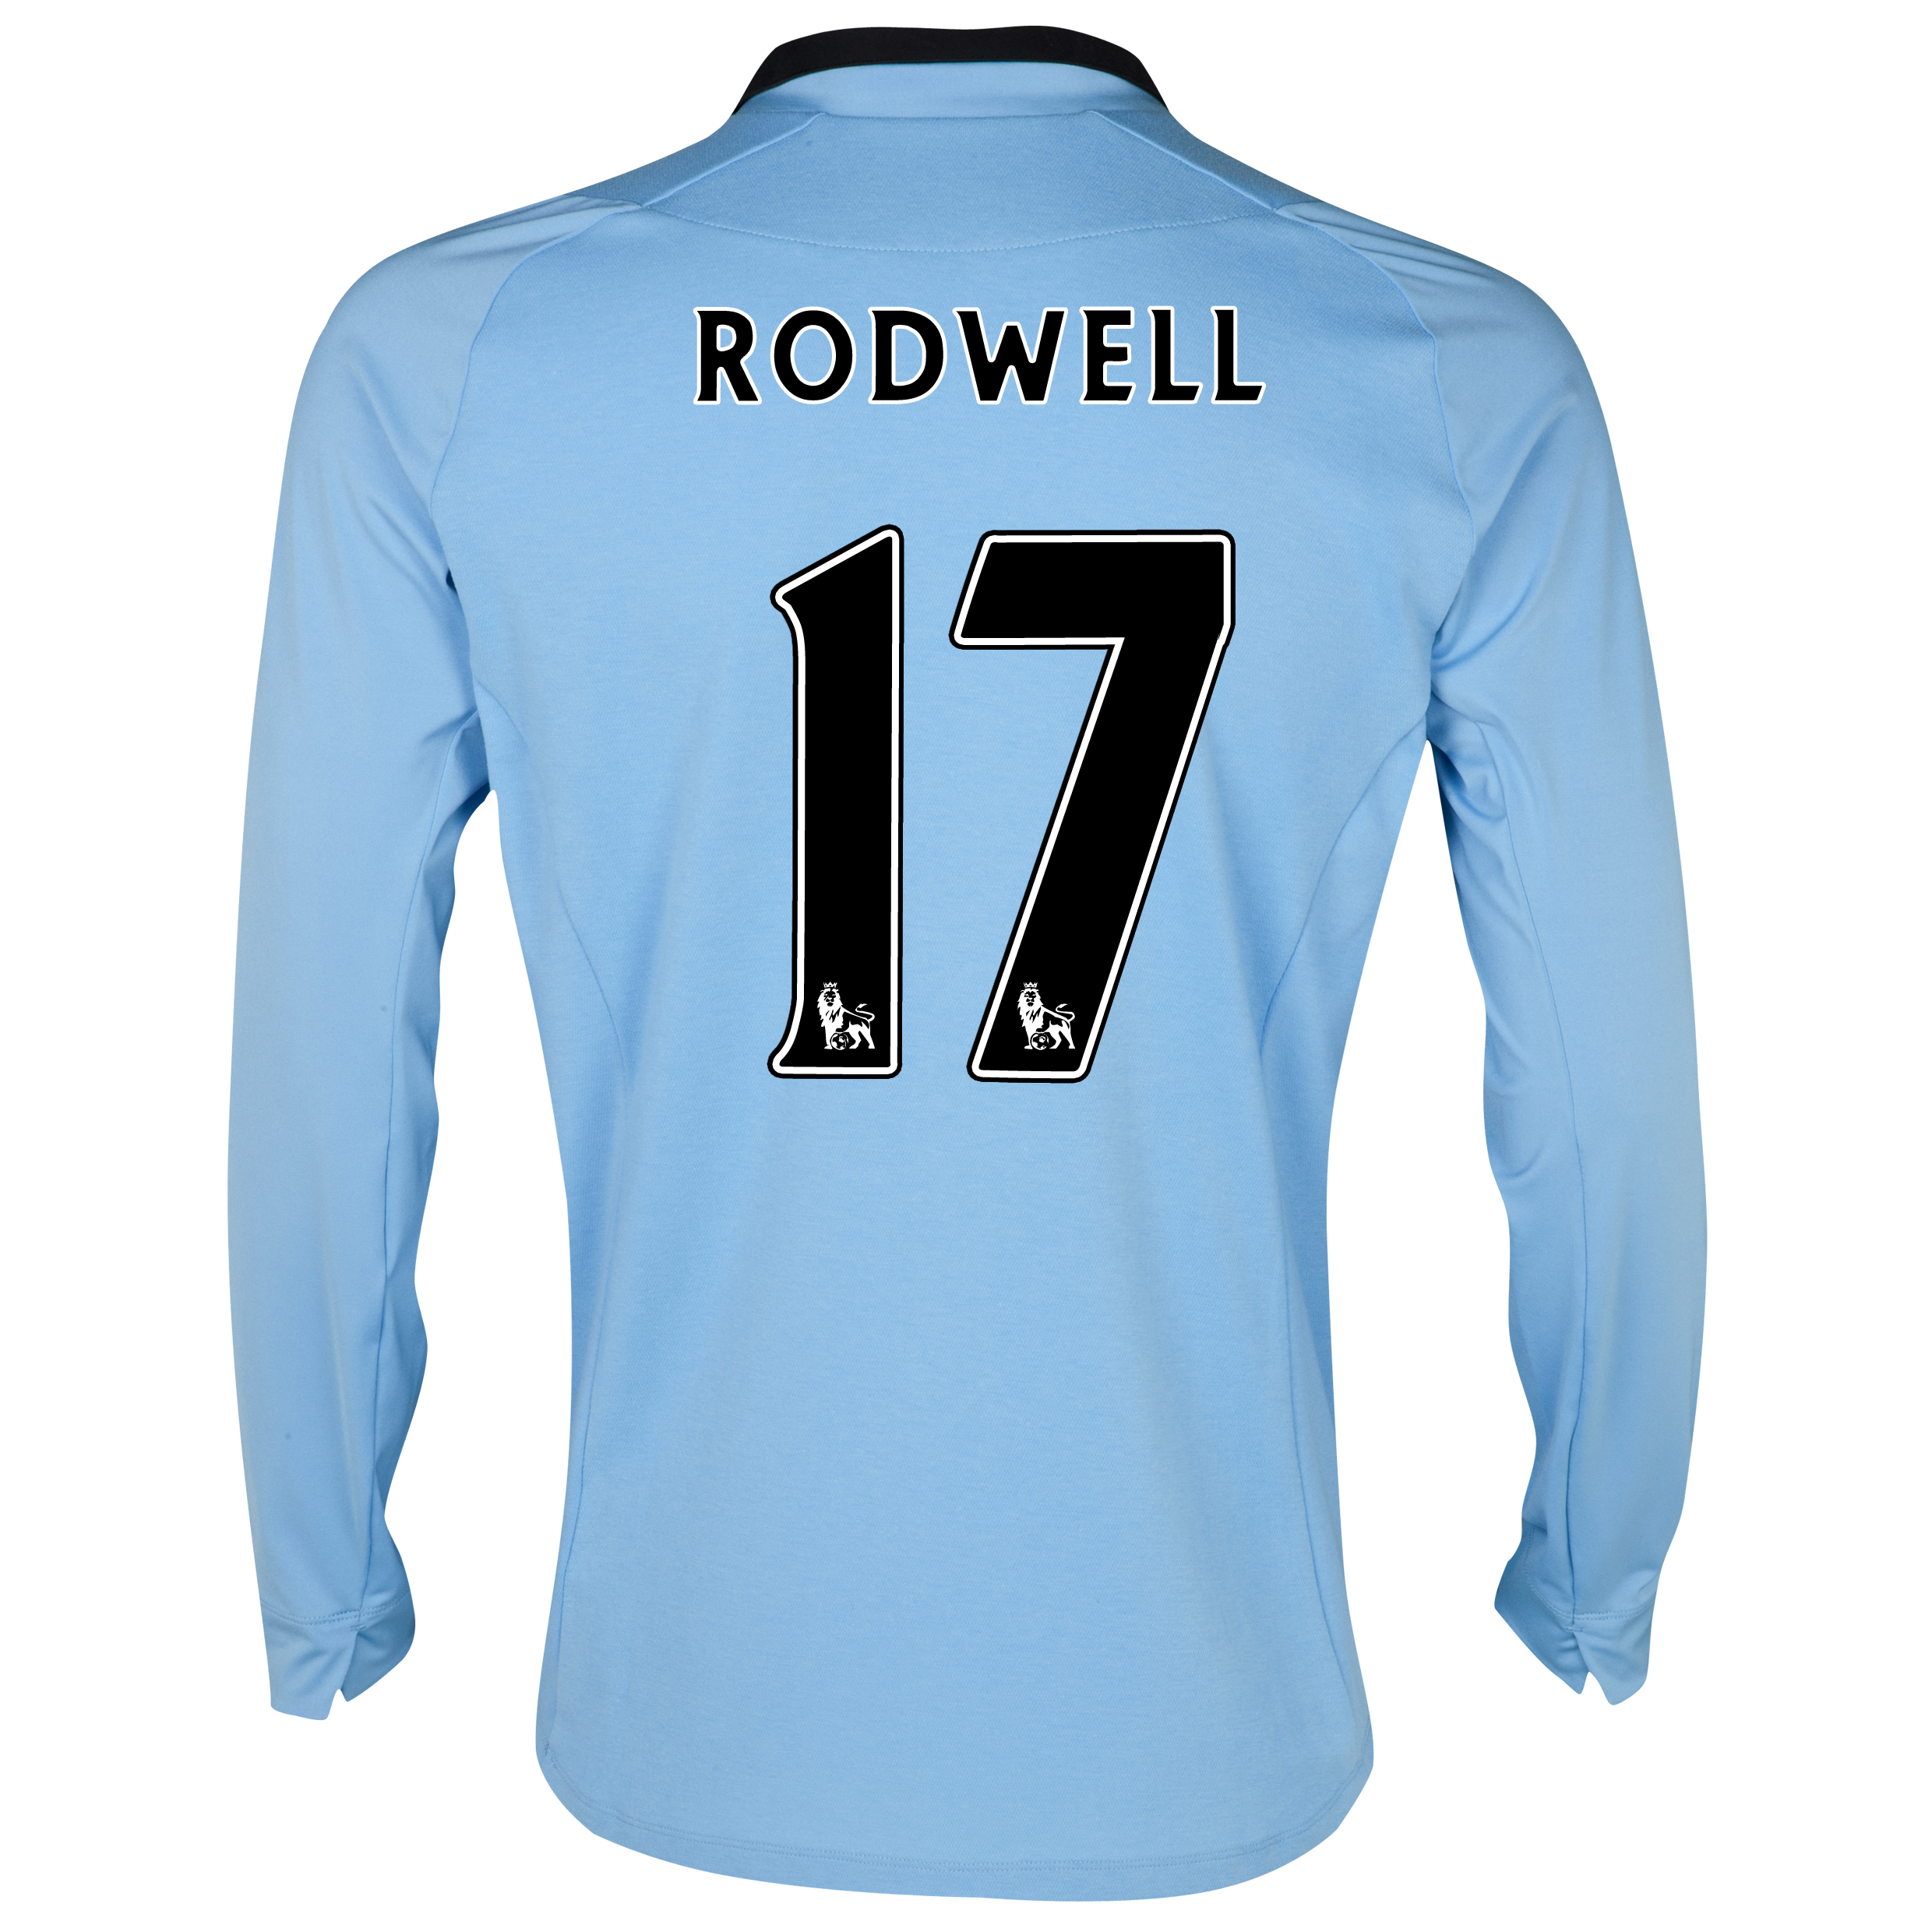 Manchester City Home Shirt 2012/13 - Long Sleeved with Rodwell 17 printing